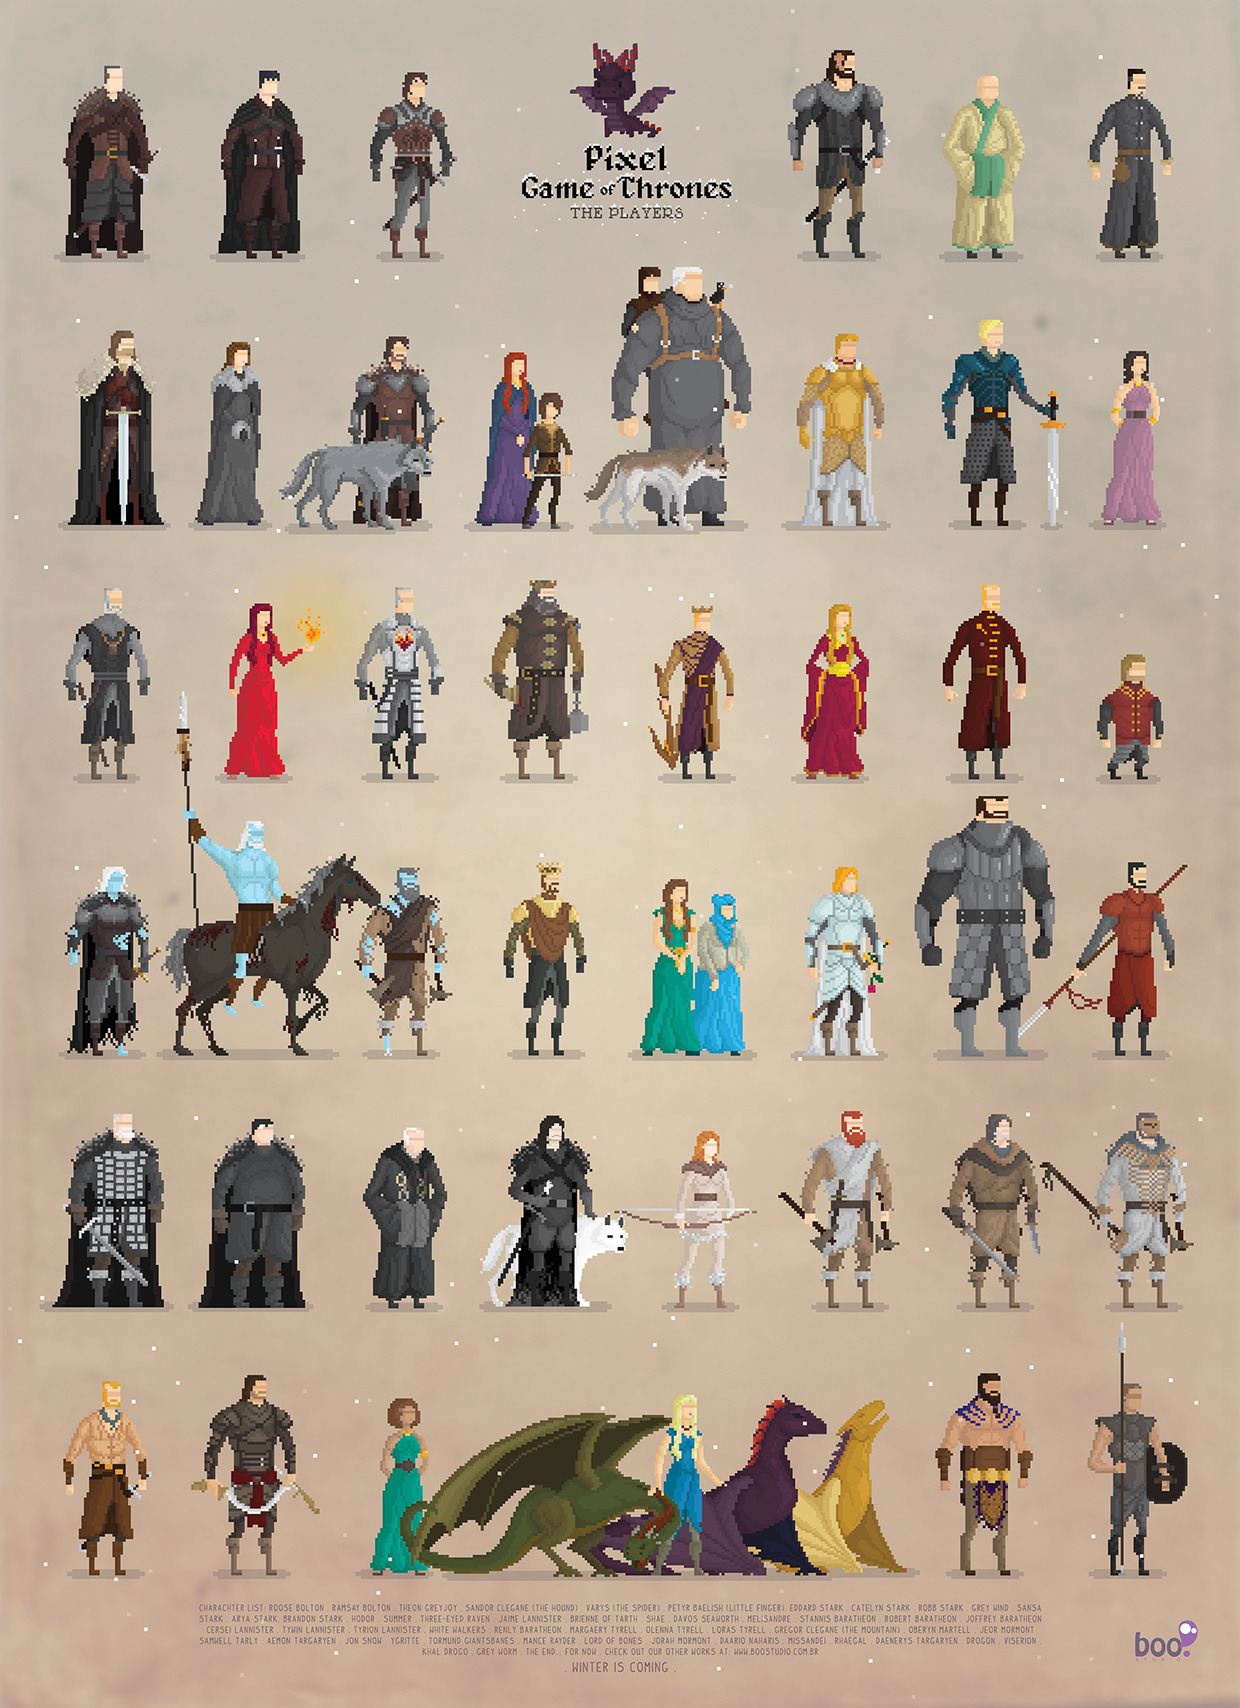 Personnage Game Of Throne : personnage, throne, Design, Television, Thrones, Pixel, Studio, Pixalry